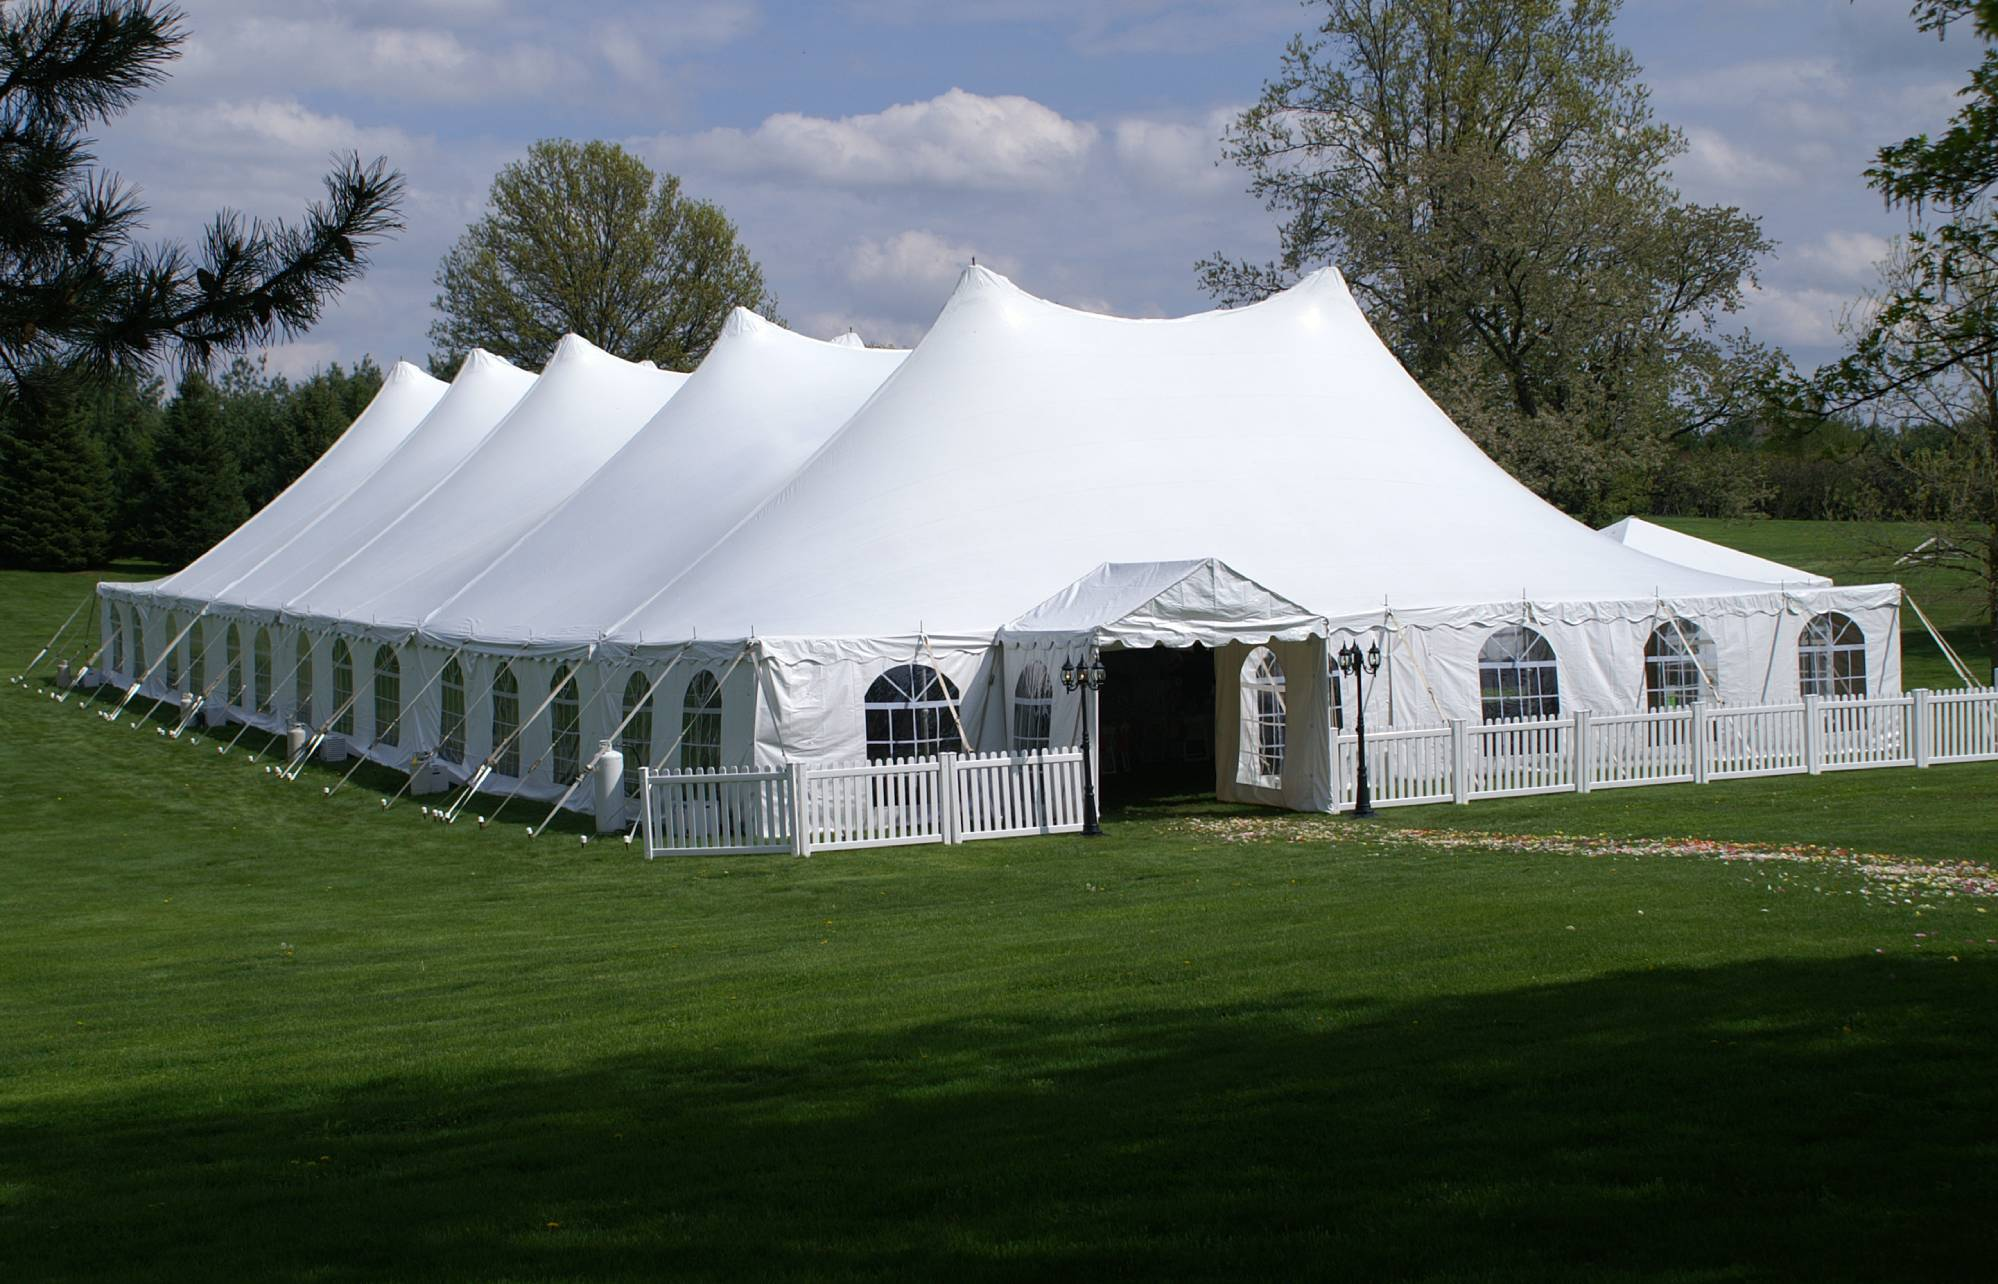 60' Wide Pole Tents